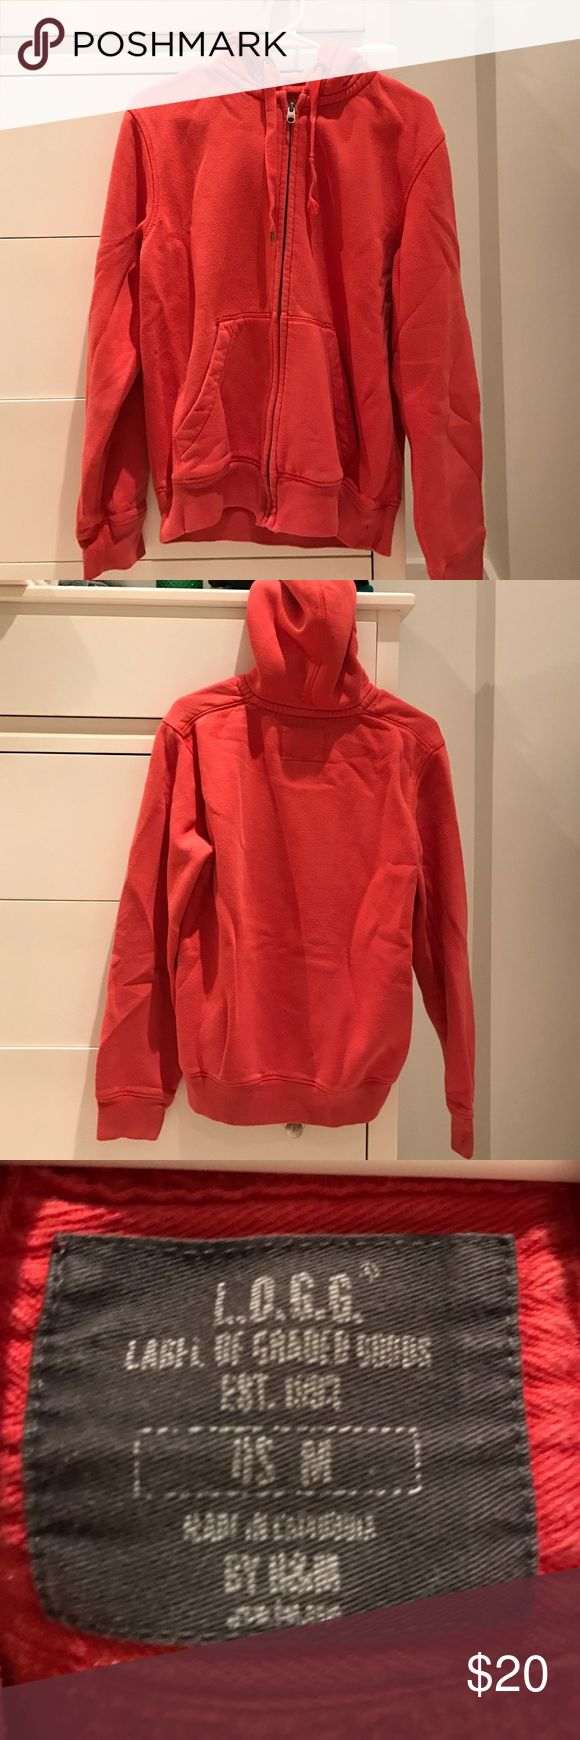 L.O.G.G. BY H&M MENS ORANGE ZIP UP HOODIE SIZE:M L.O.G.G. BY H&M MENS ORANGE ZIP UP HOODIE SIZE:M H&M Sweaters Zip Up